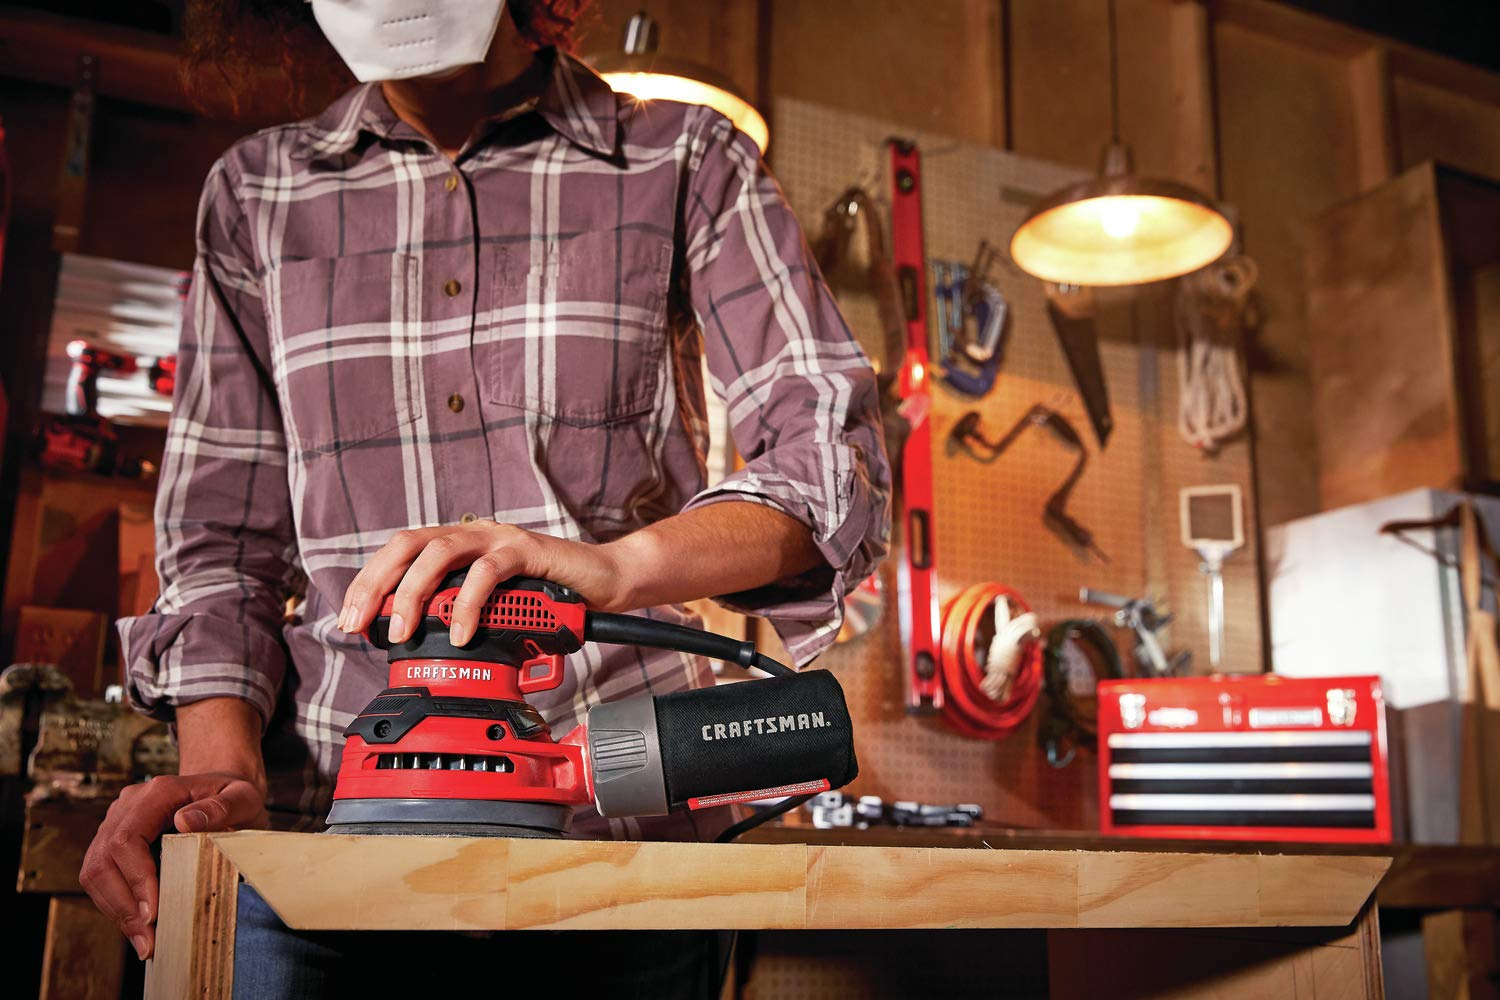 Craftsman CMEW231 featured image 6